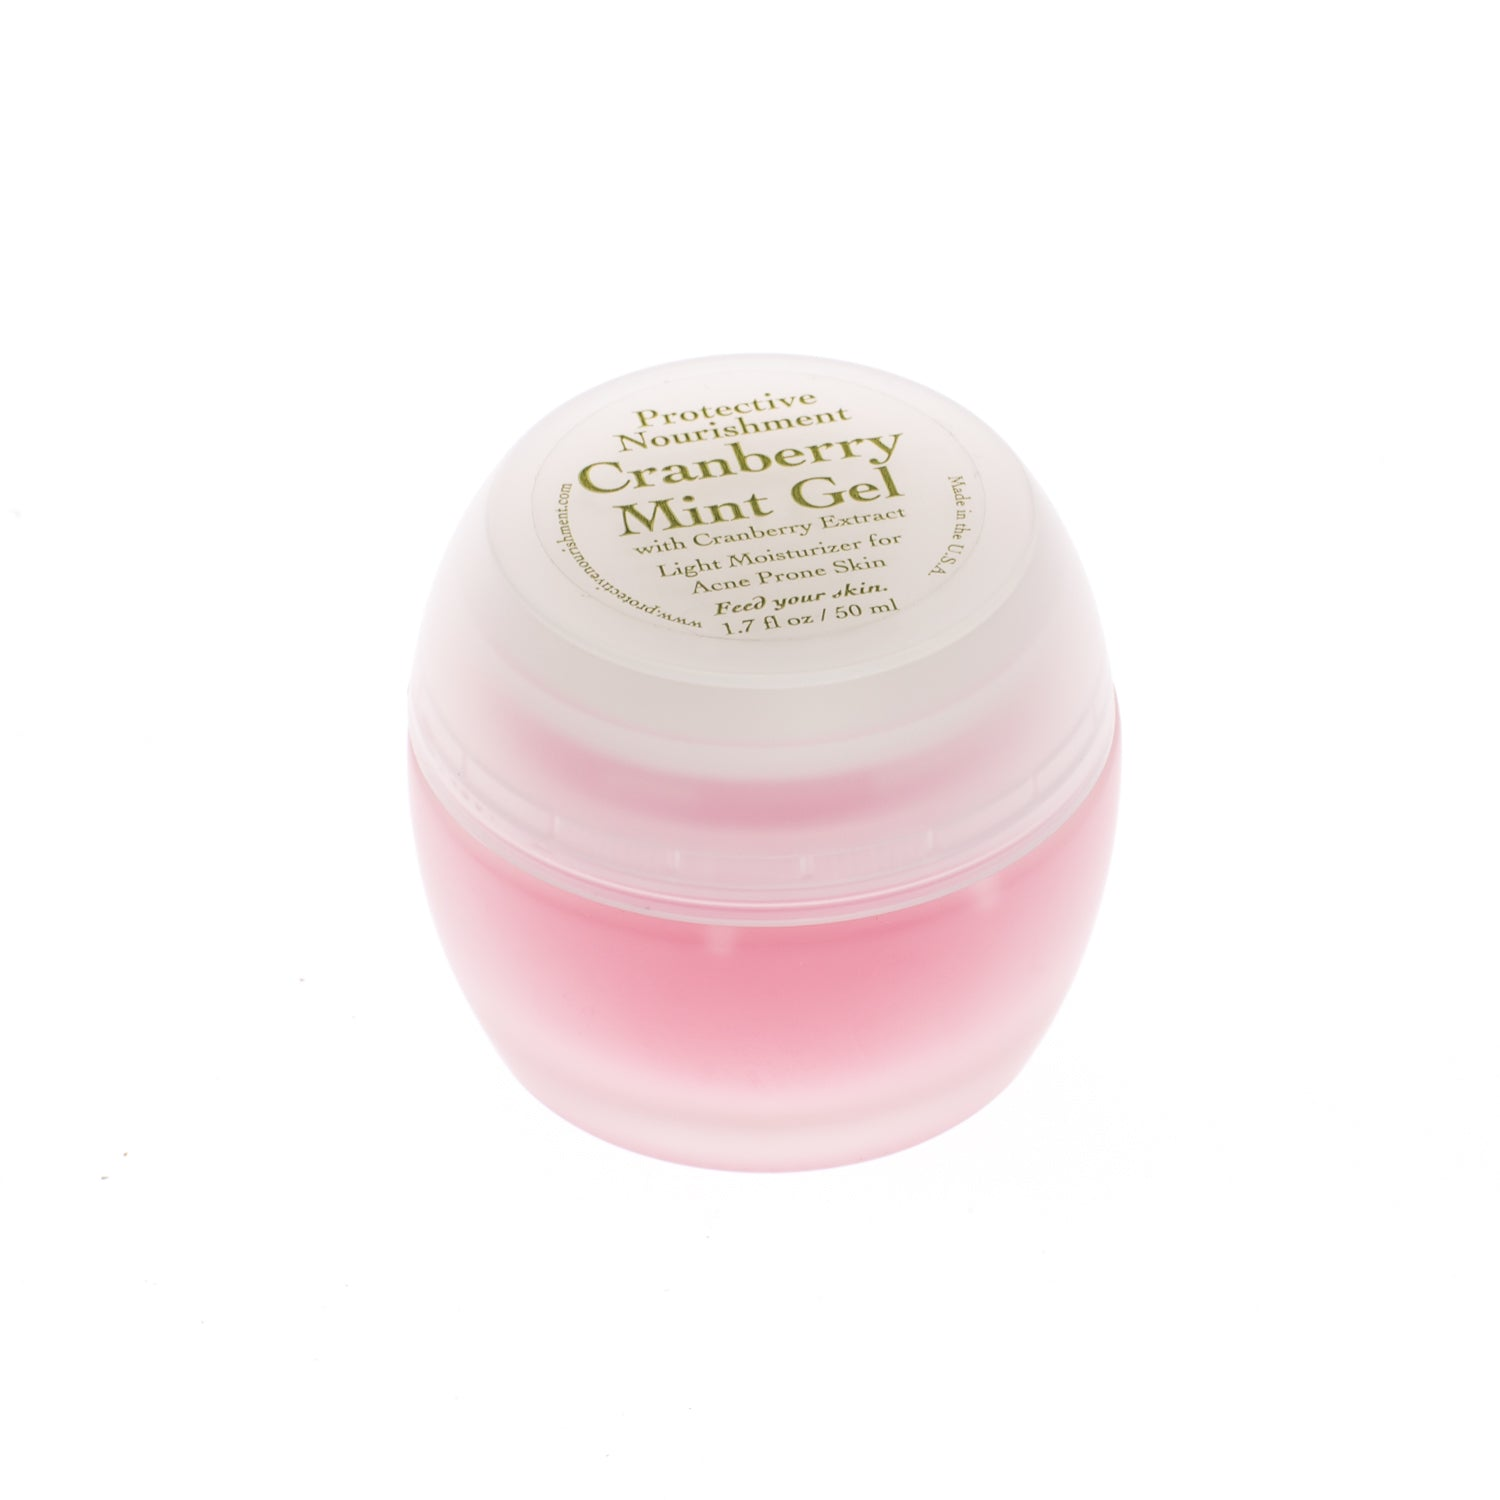 Cranberry Mint Gel - Protective Nourishment